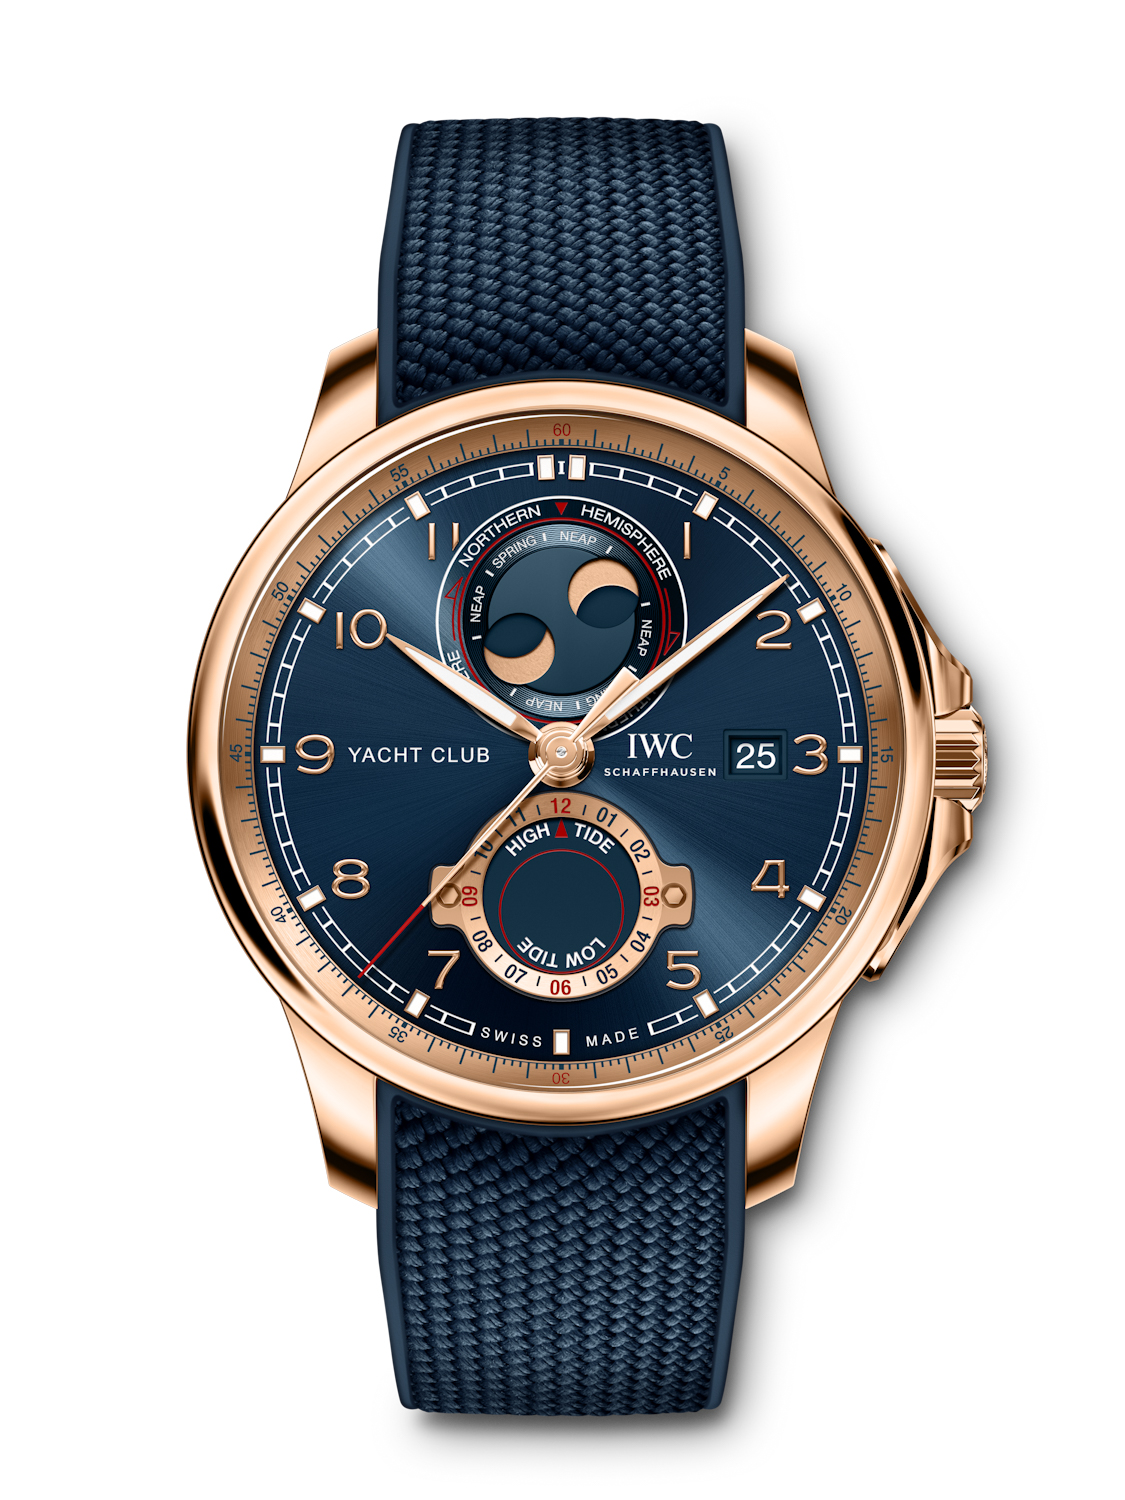 iwc Portugieser yacht club moon & tide timeandwatches.pl